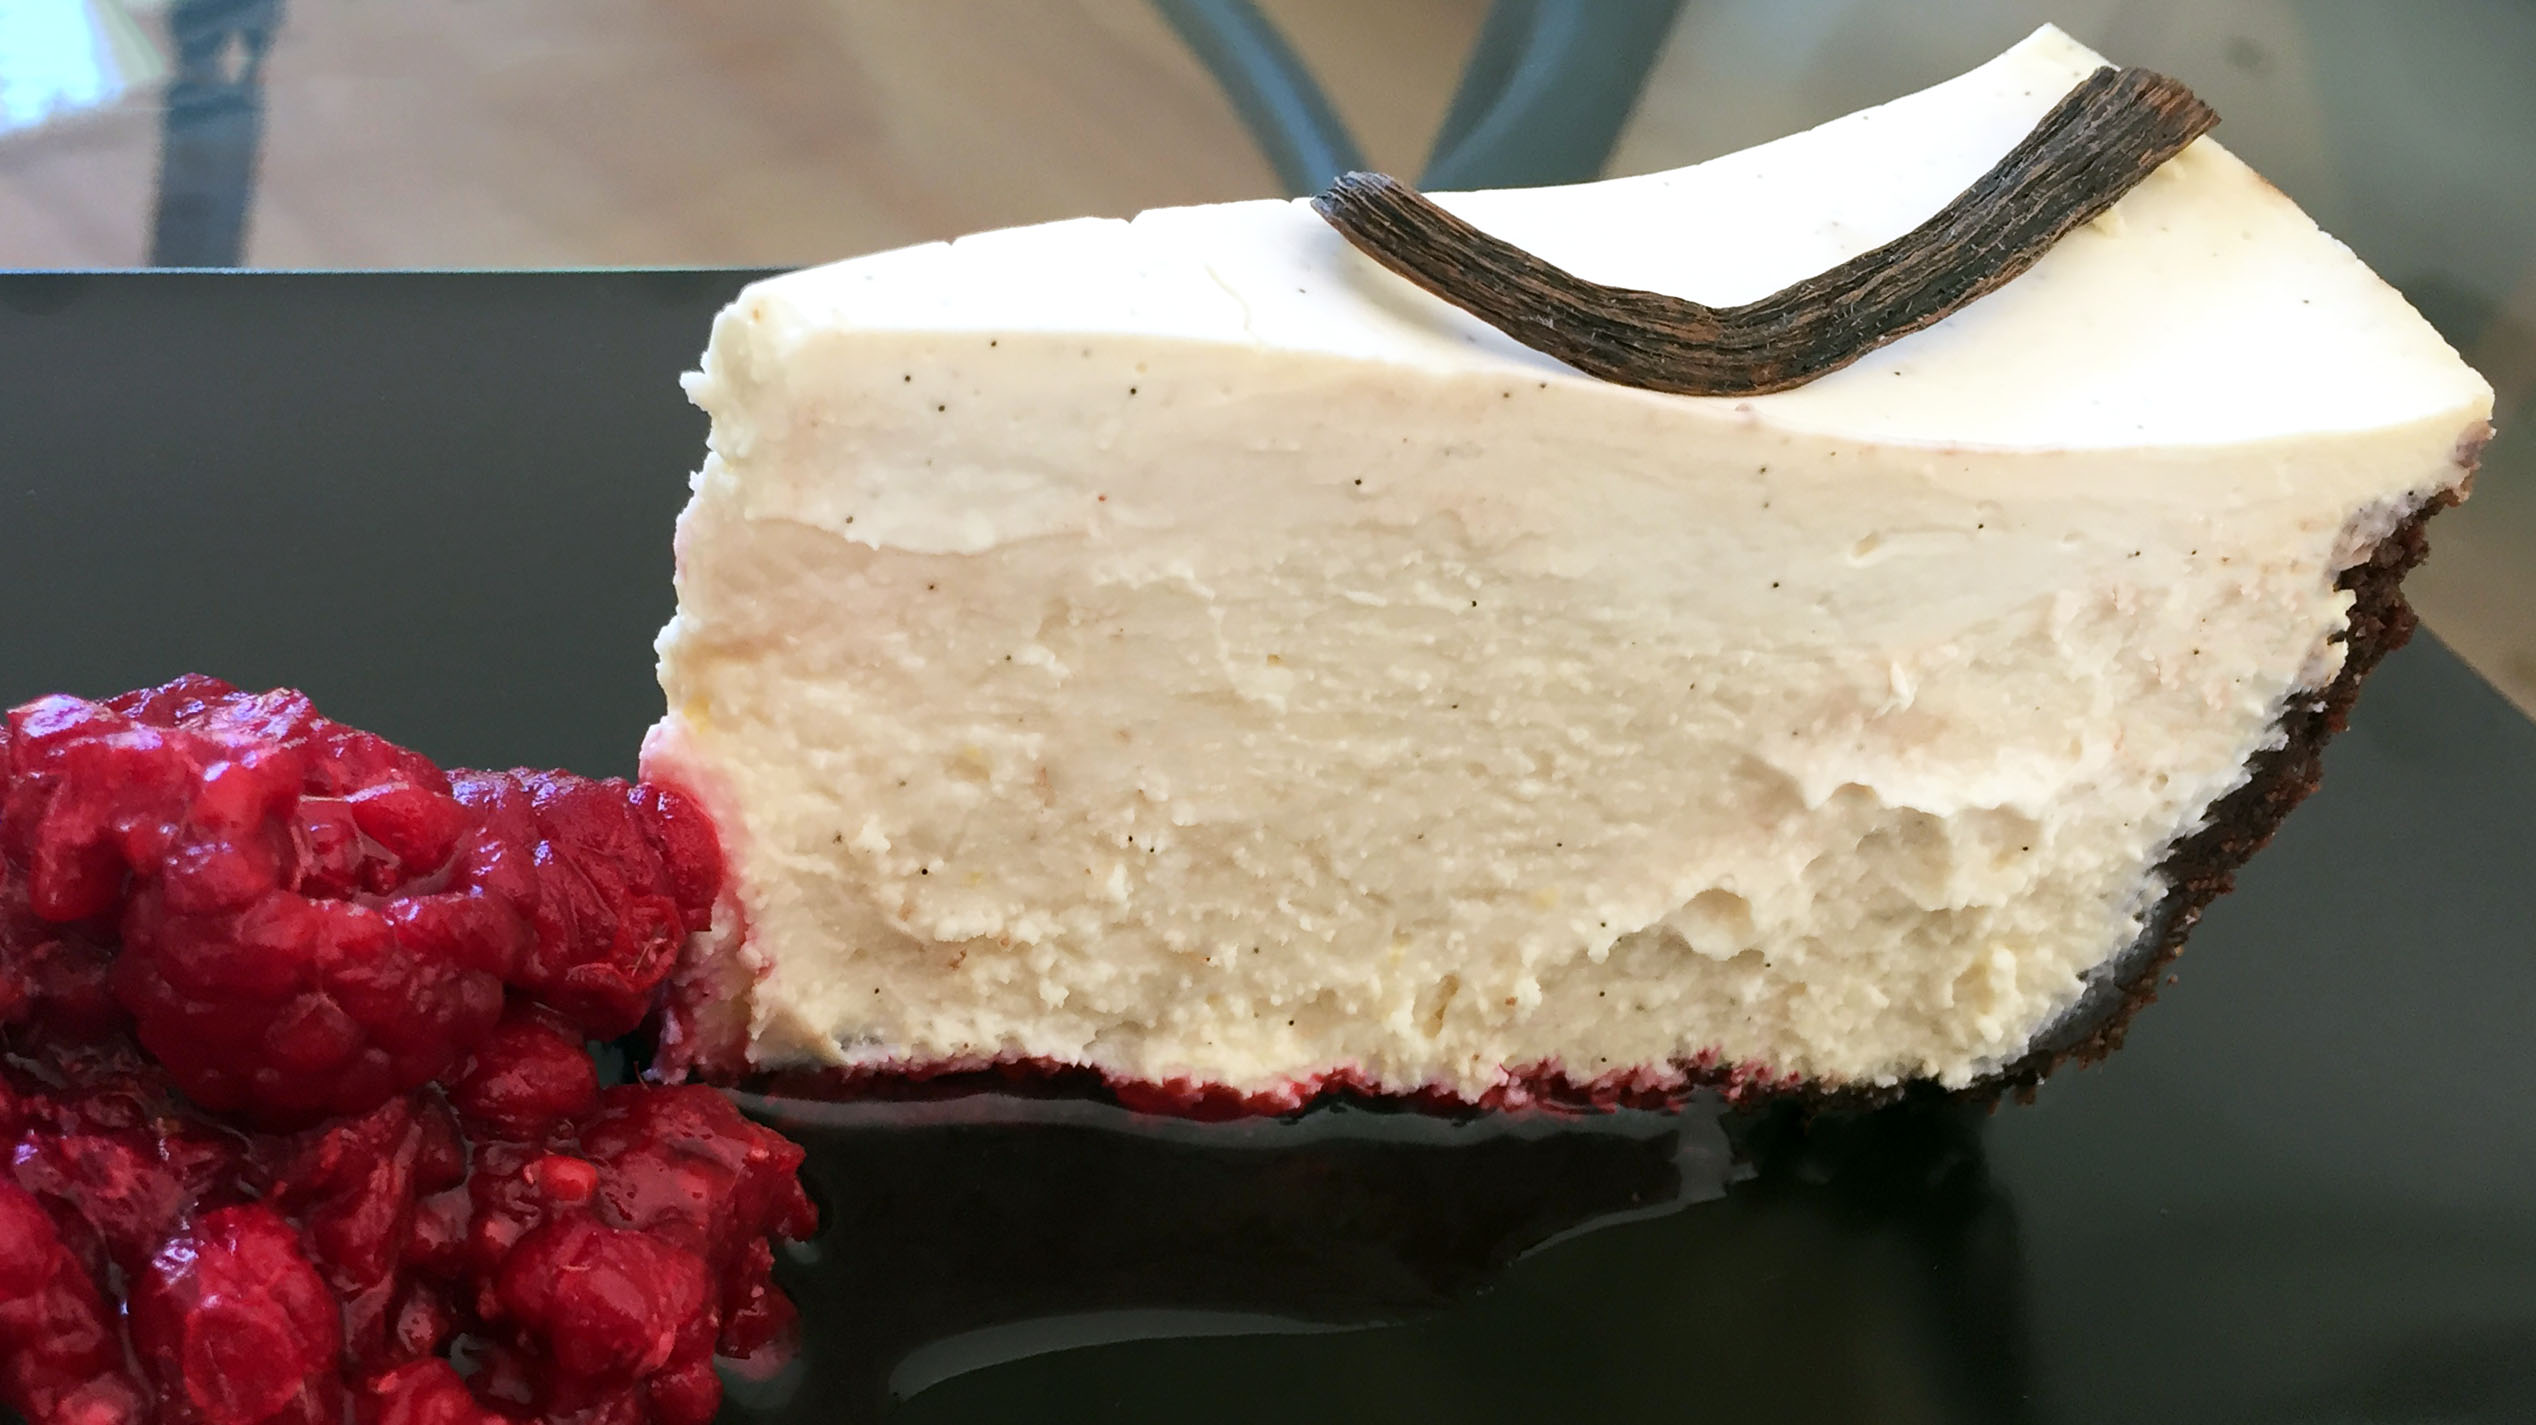 Chocolate & Vanilla Cheesecake with Raspberries